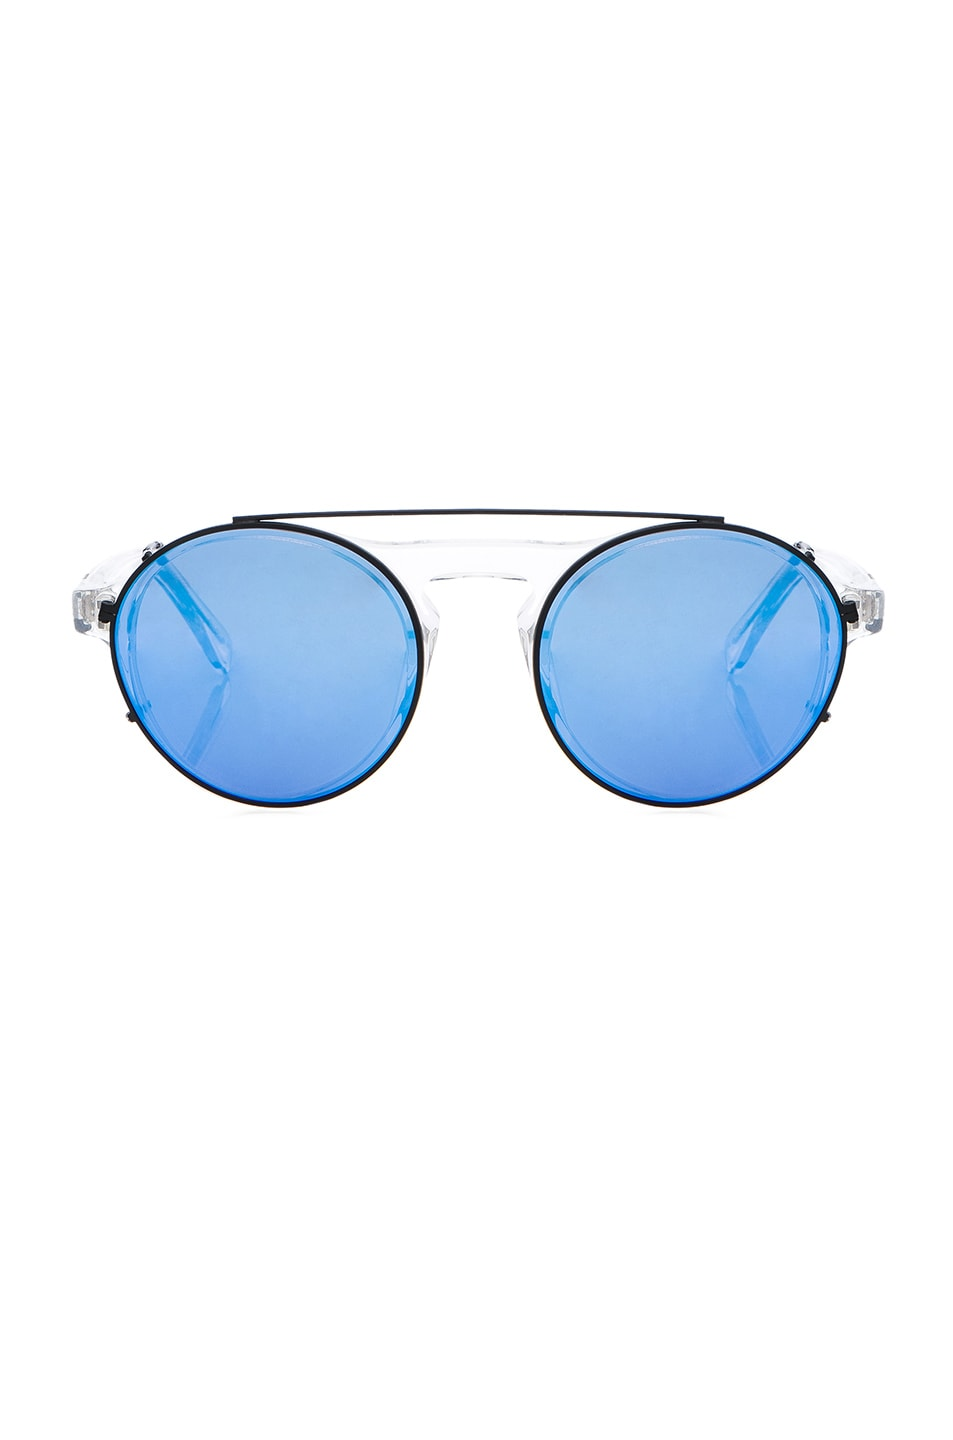 Image 1 of WESTWARD LEANING Dyad 11 Sunglasses with Interchangeable Clips in Crystal & Deep Blue